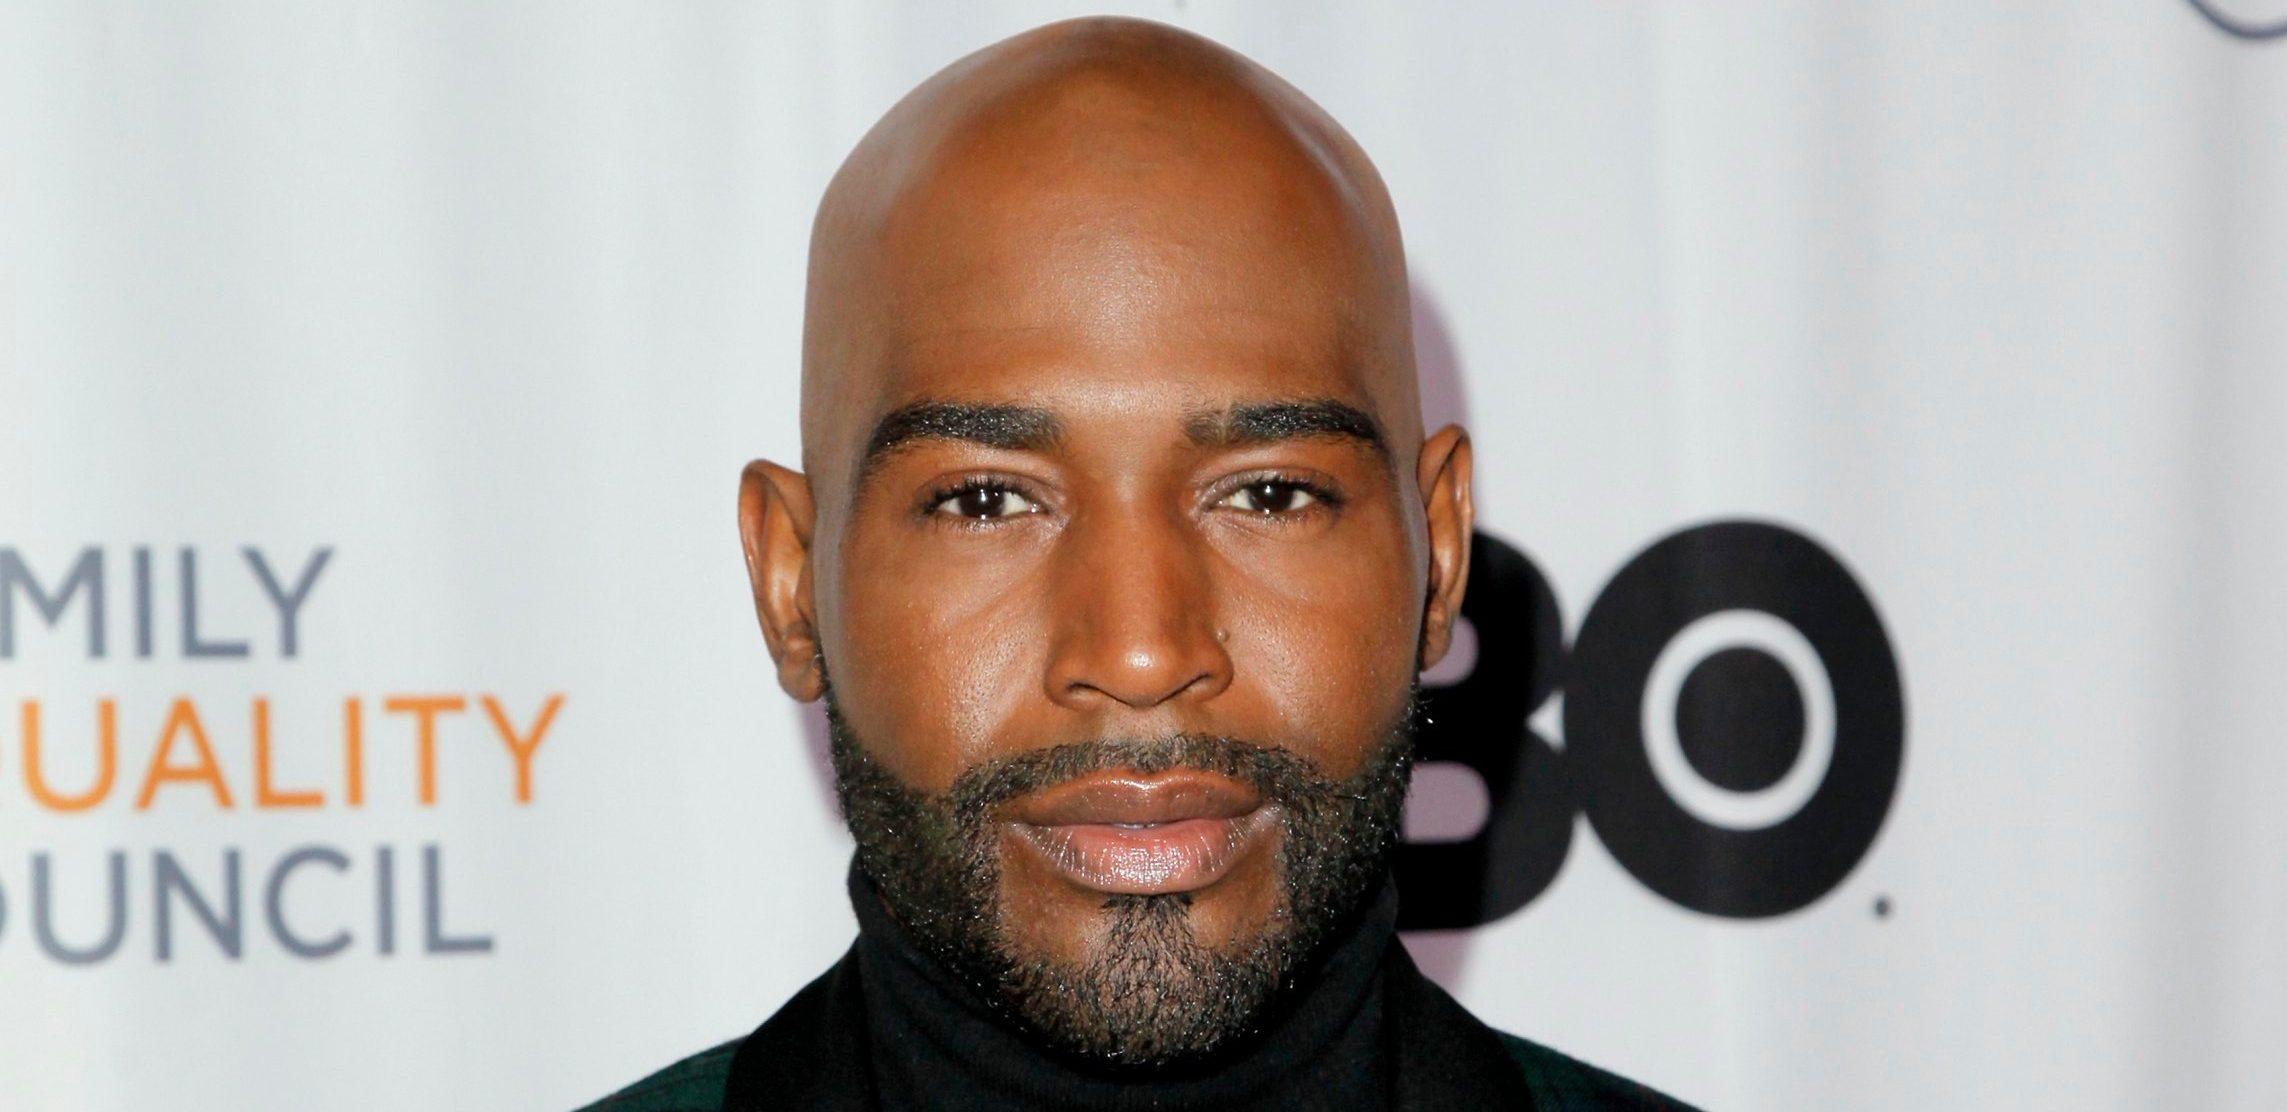 Queer Eye host Karamo Brown 'forgives himself' for past cocaine addiction: 'It became my escape'